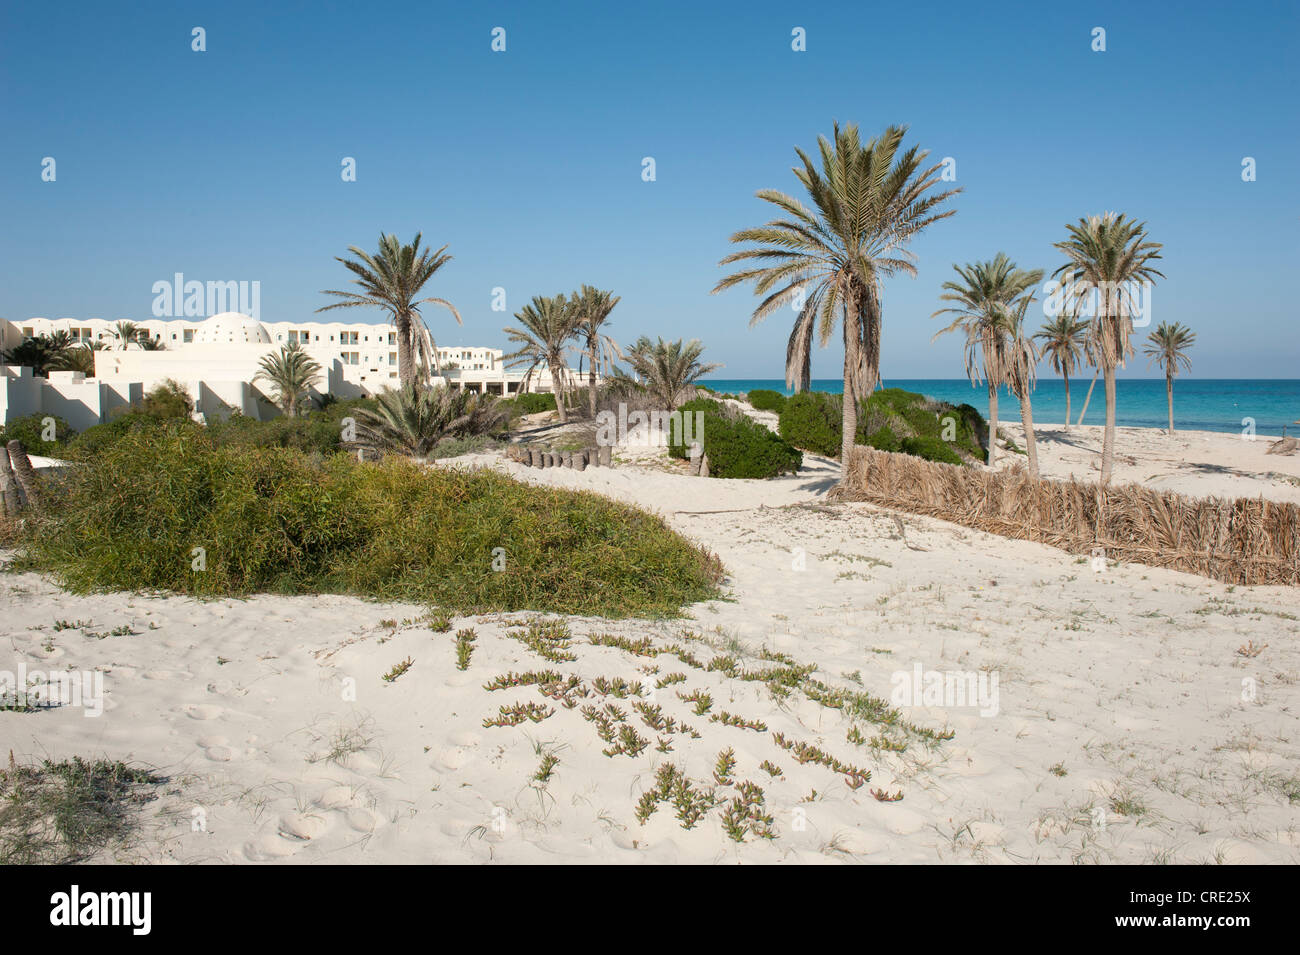 Lonely beach hotel, palm trees and ocean, Djerba island, Tunisia, Maghreb, North Africa, Africa - Stock Image